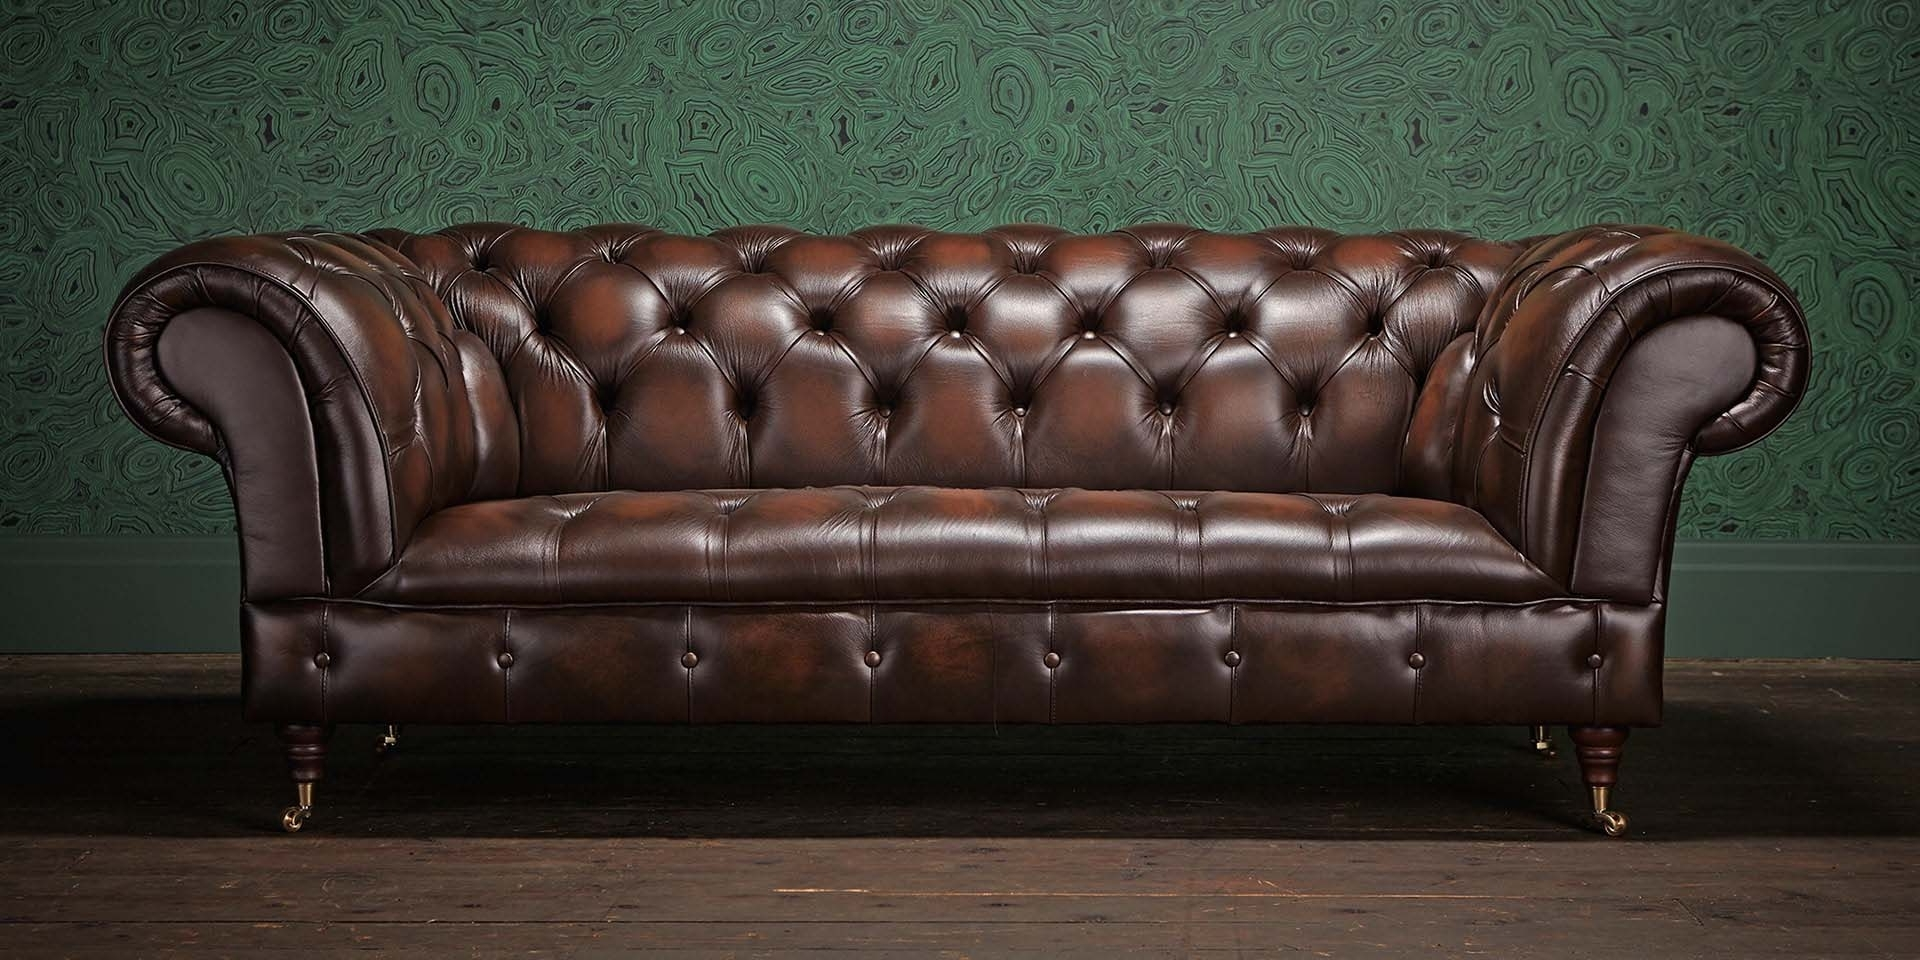 Leather Chesterfield Sofas Regarding Current 4 Vital Things To Look For In A Leather Chesterfield Sofa – Blogbeen (View 10 of 20)